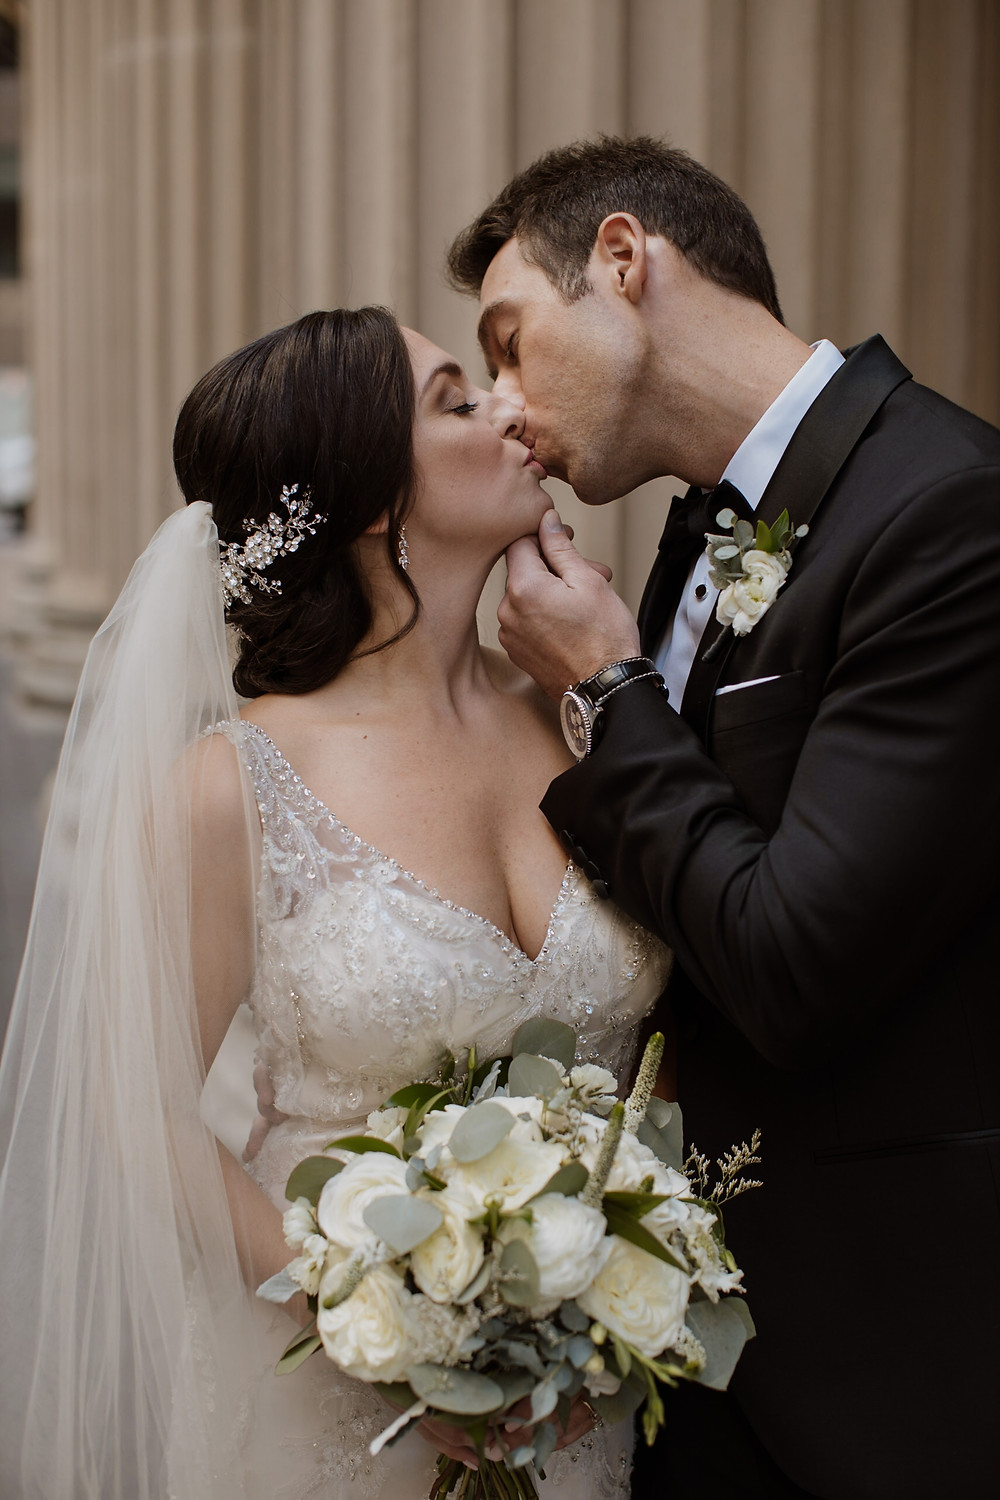 Glamorous Chicago bride and groom on wedding day